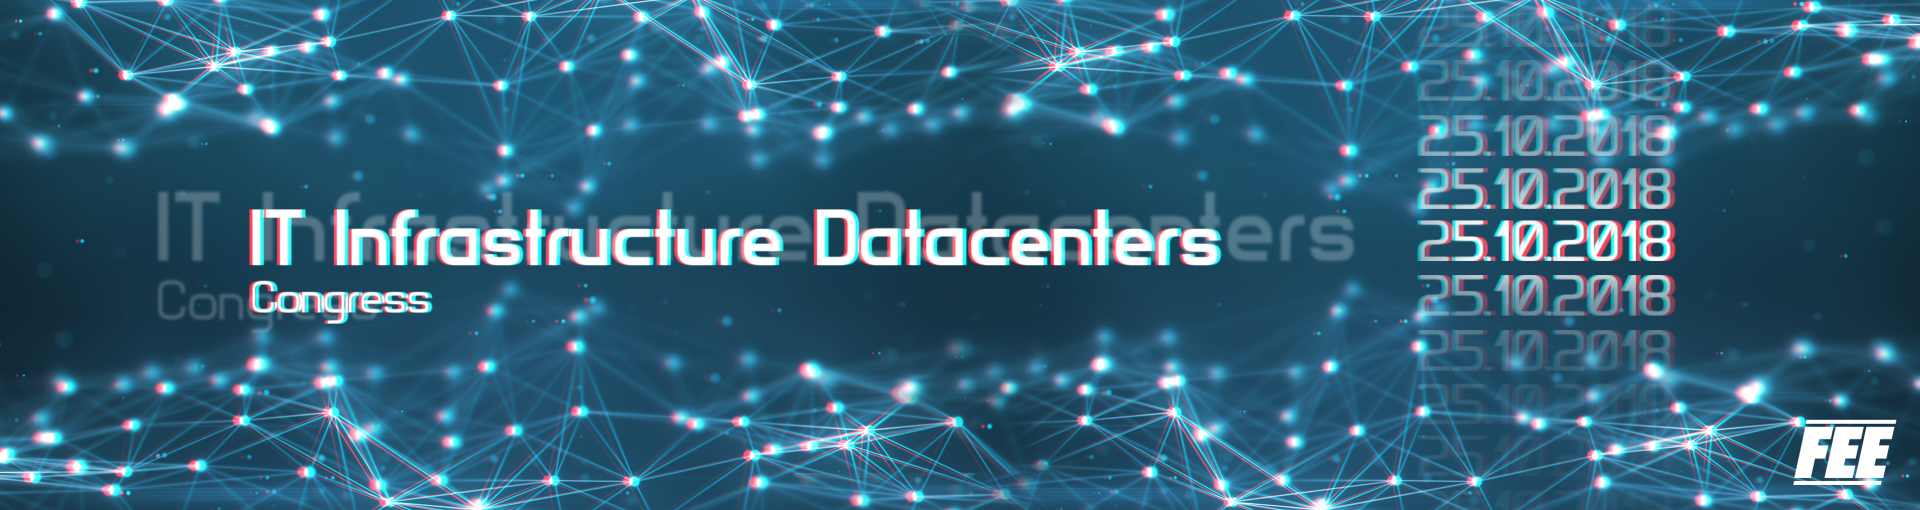 IT Infrastructure Datacenters Congress 2018